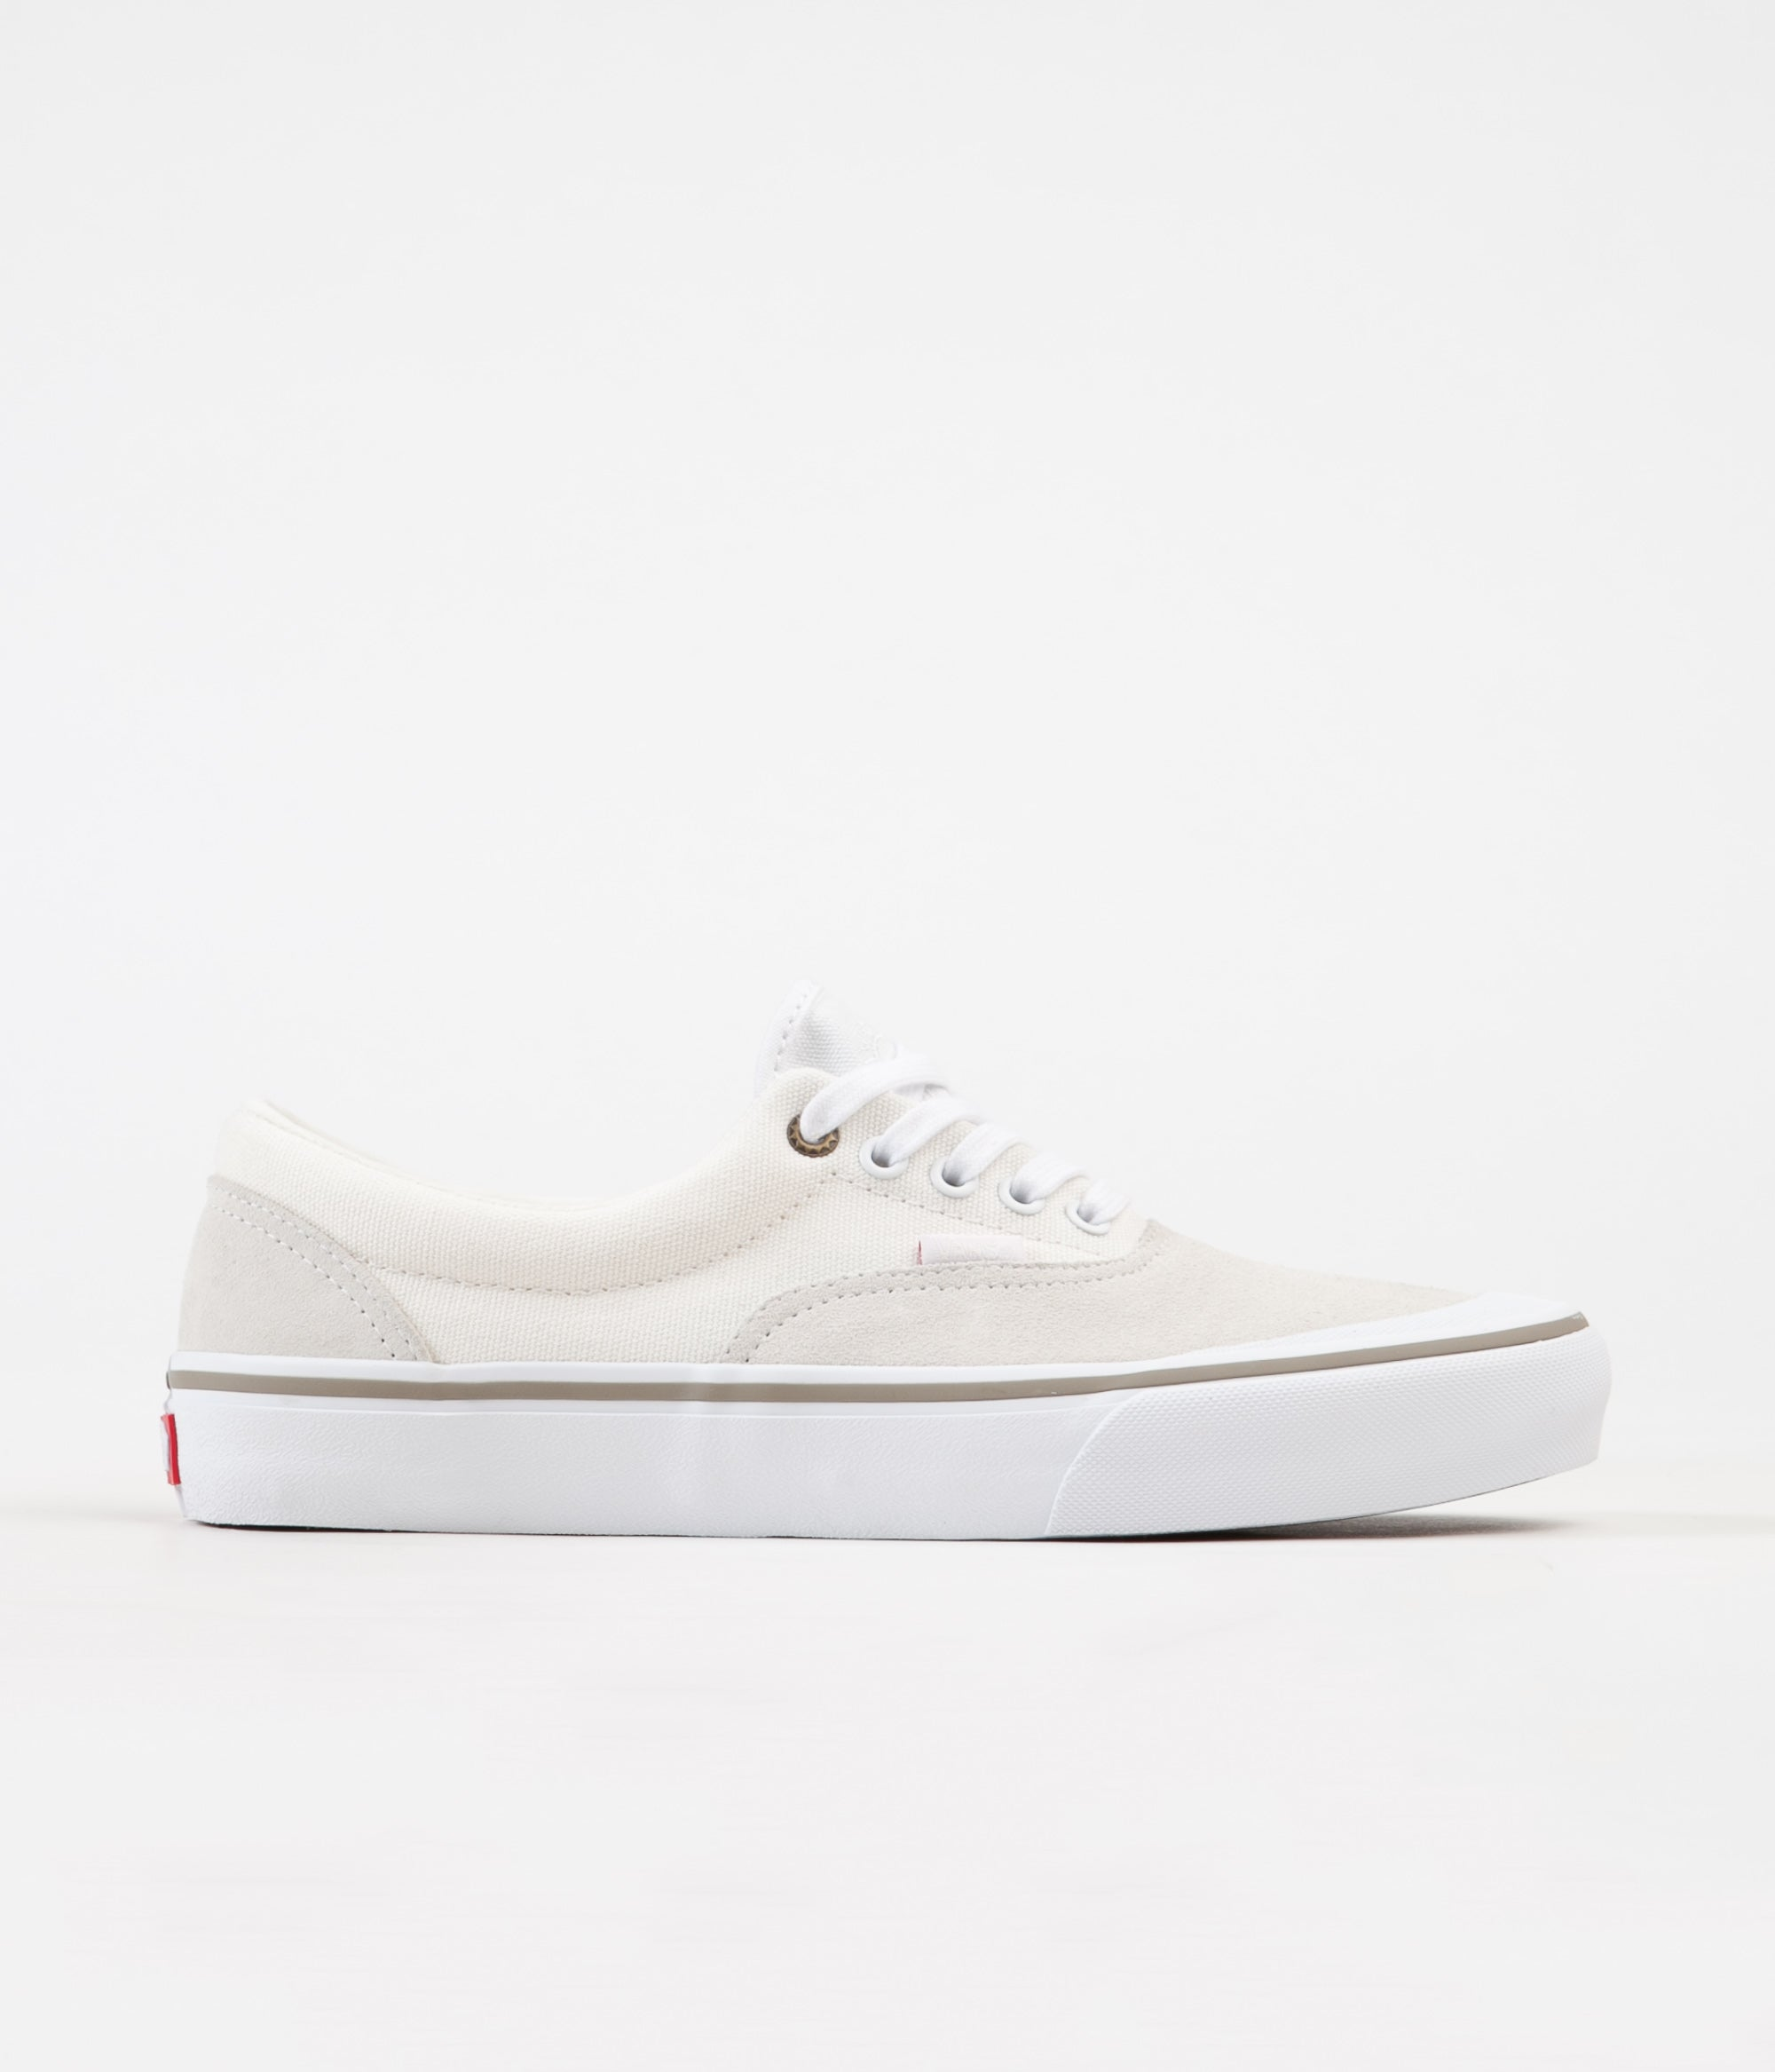 Vans Era Pro Dakota Roche Shoes - Marshmallow / White | Flatspot